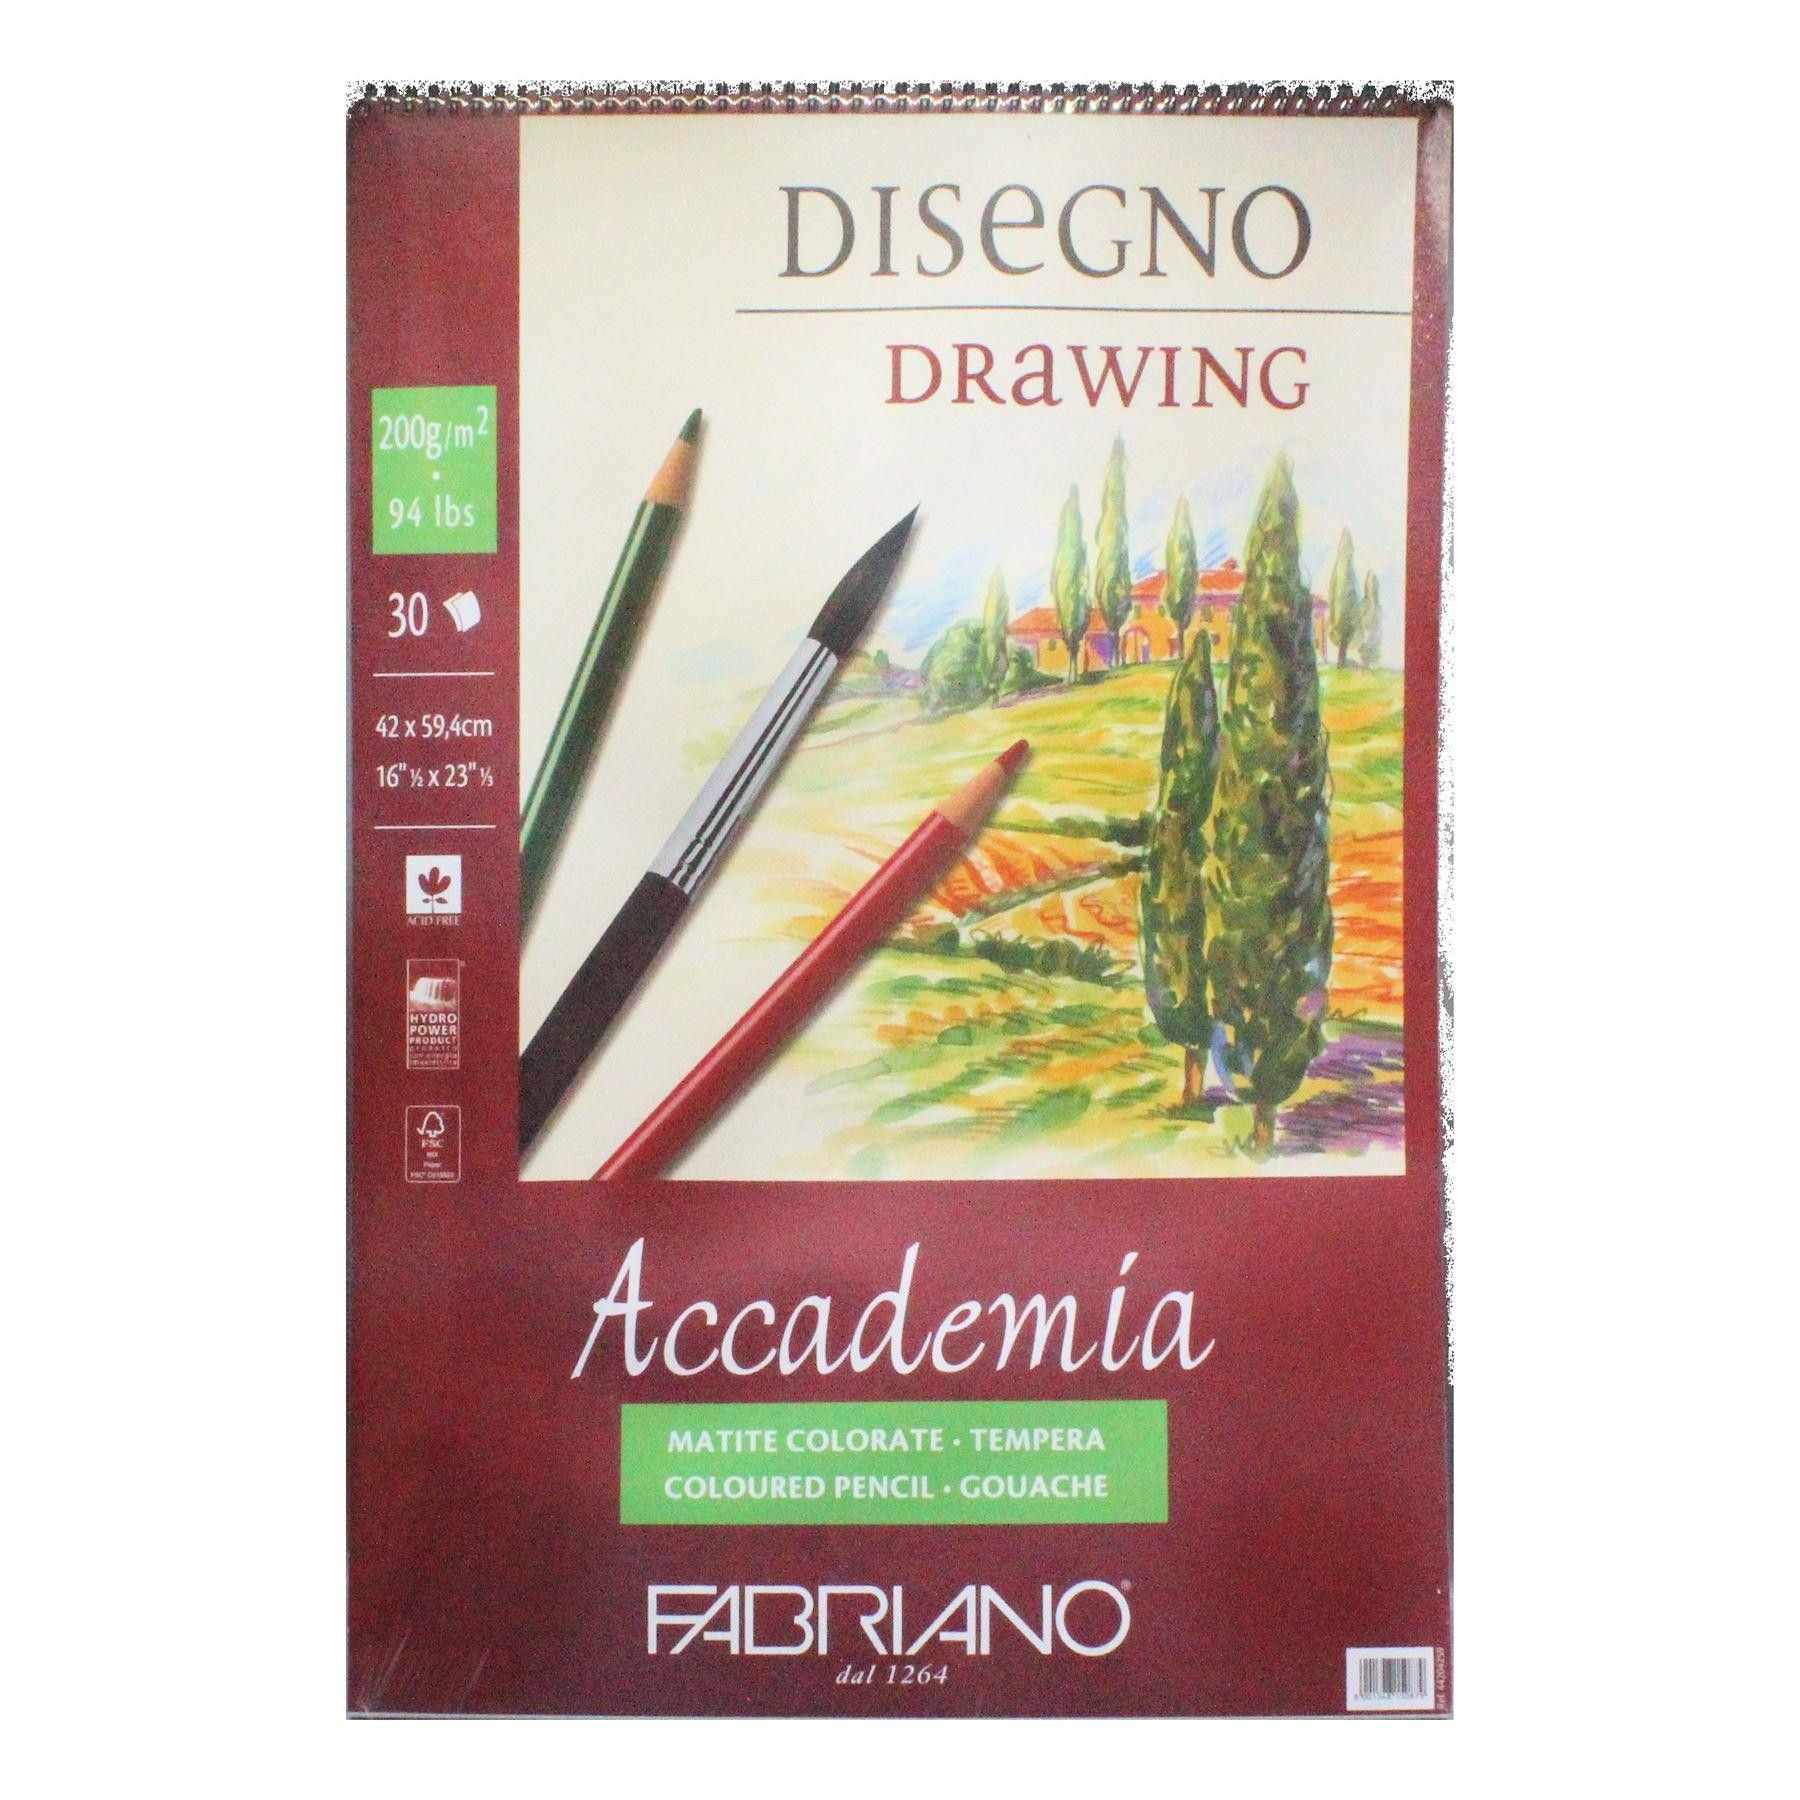 Fabriano Accademia 200gsm Spiral Bound Drawing Pad 30 Sheets